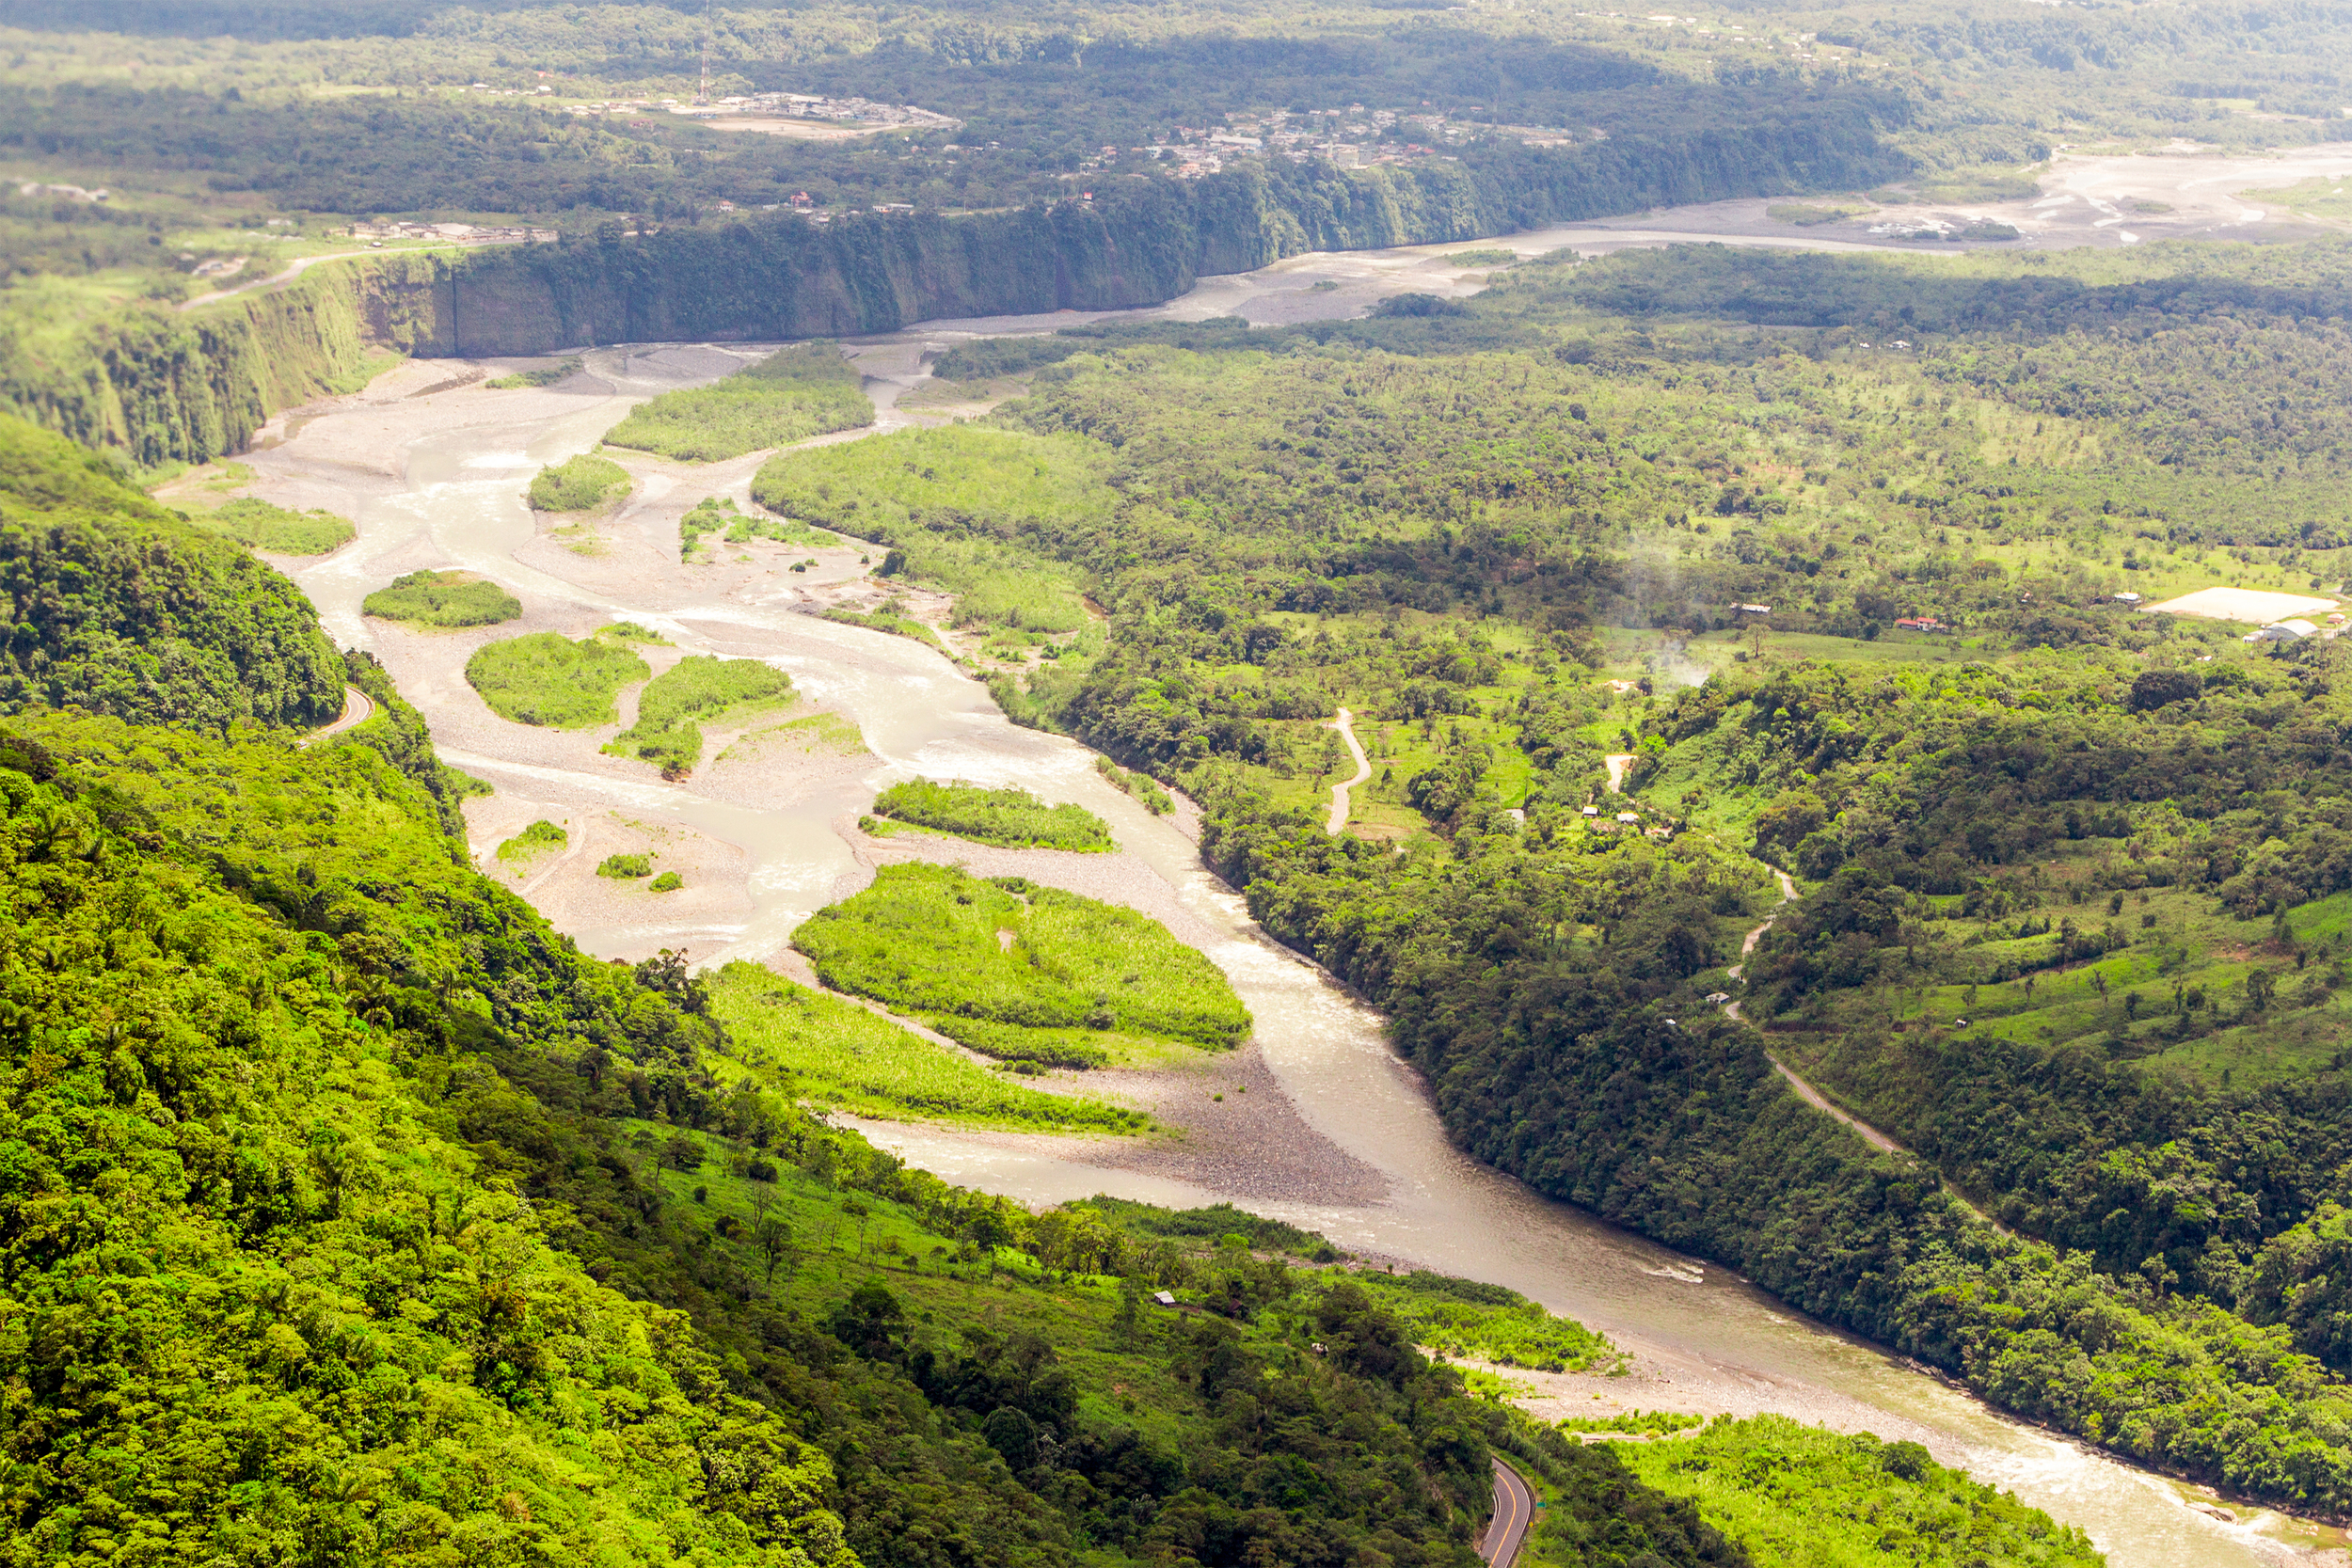 Pastaza River Basin Aerial Shot From Low Altitude Full Size Helicopter shutterstock_331873283.jpg